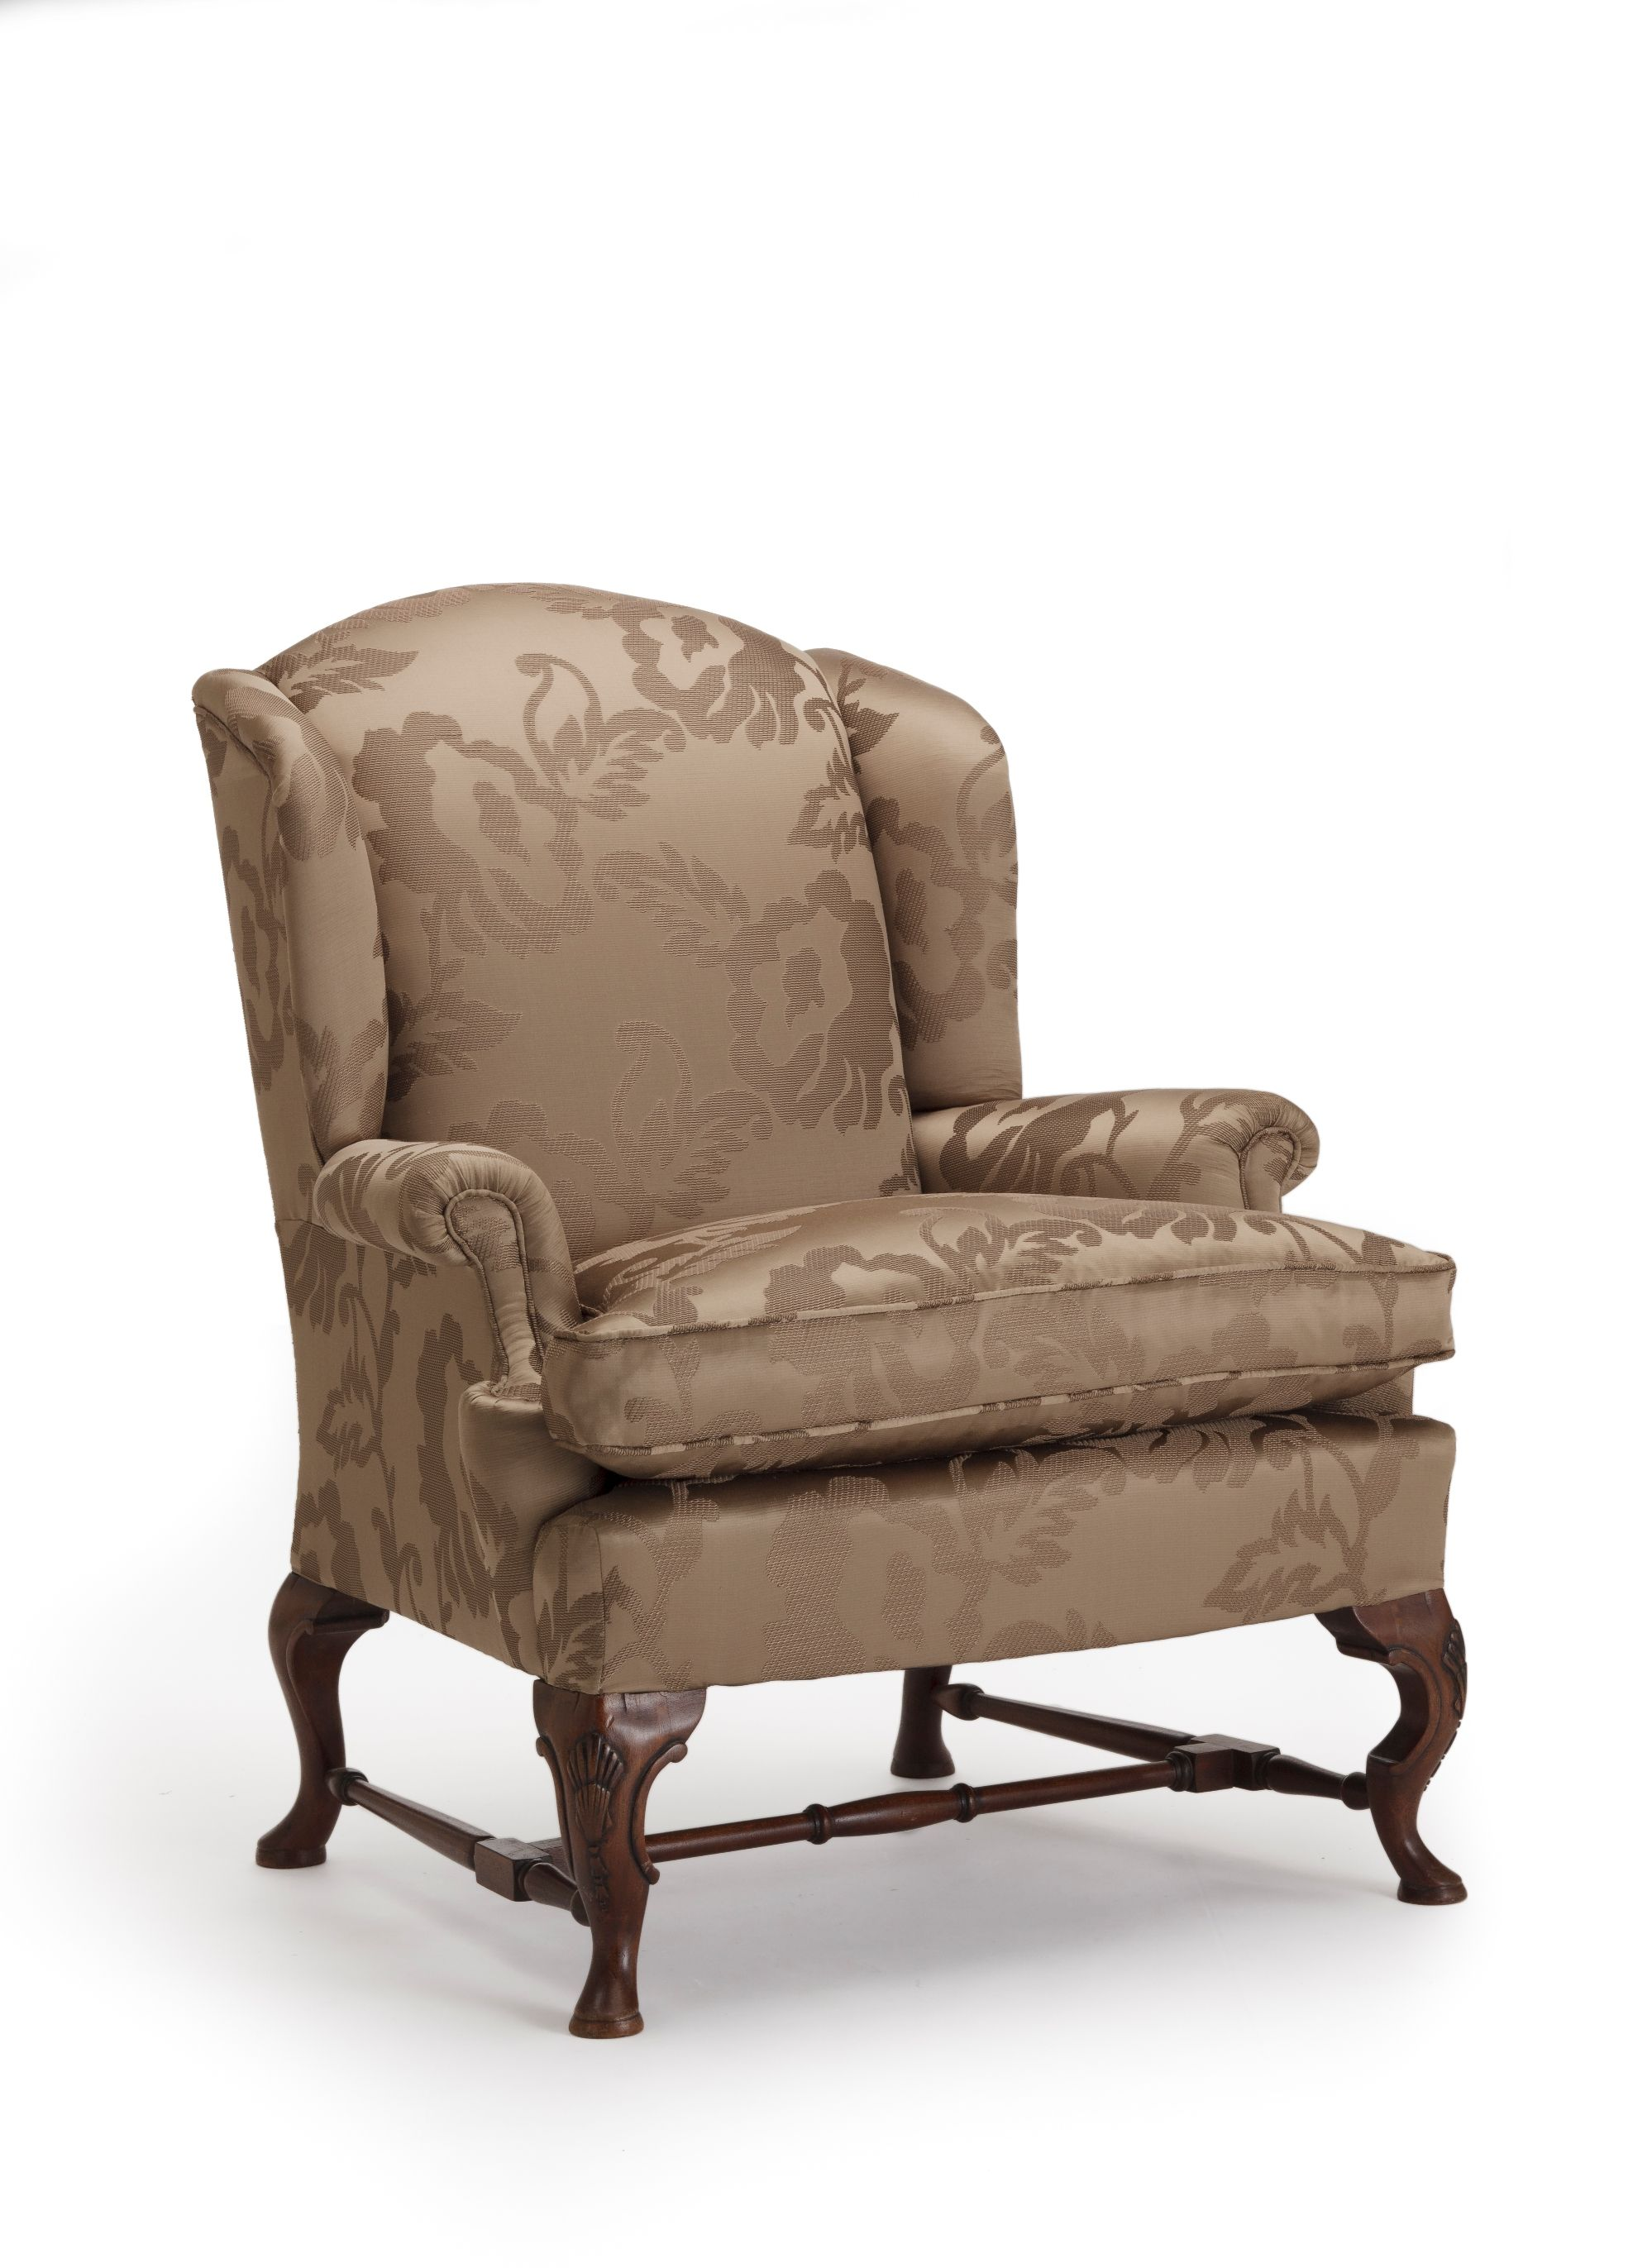 queen anne wing chair by the odd chair company